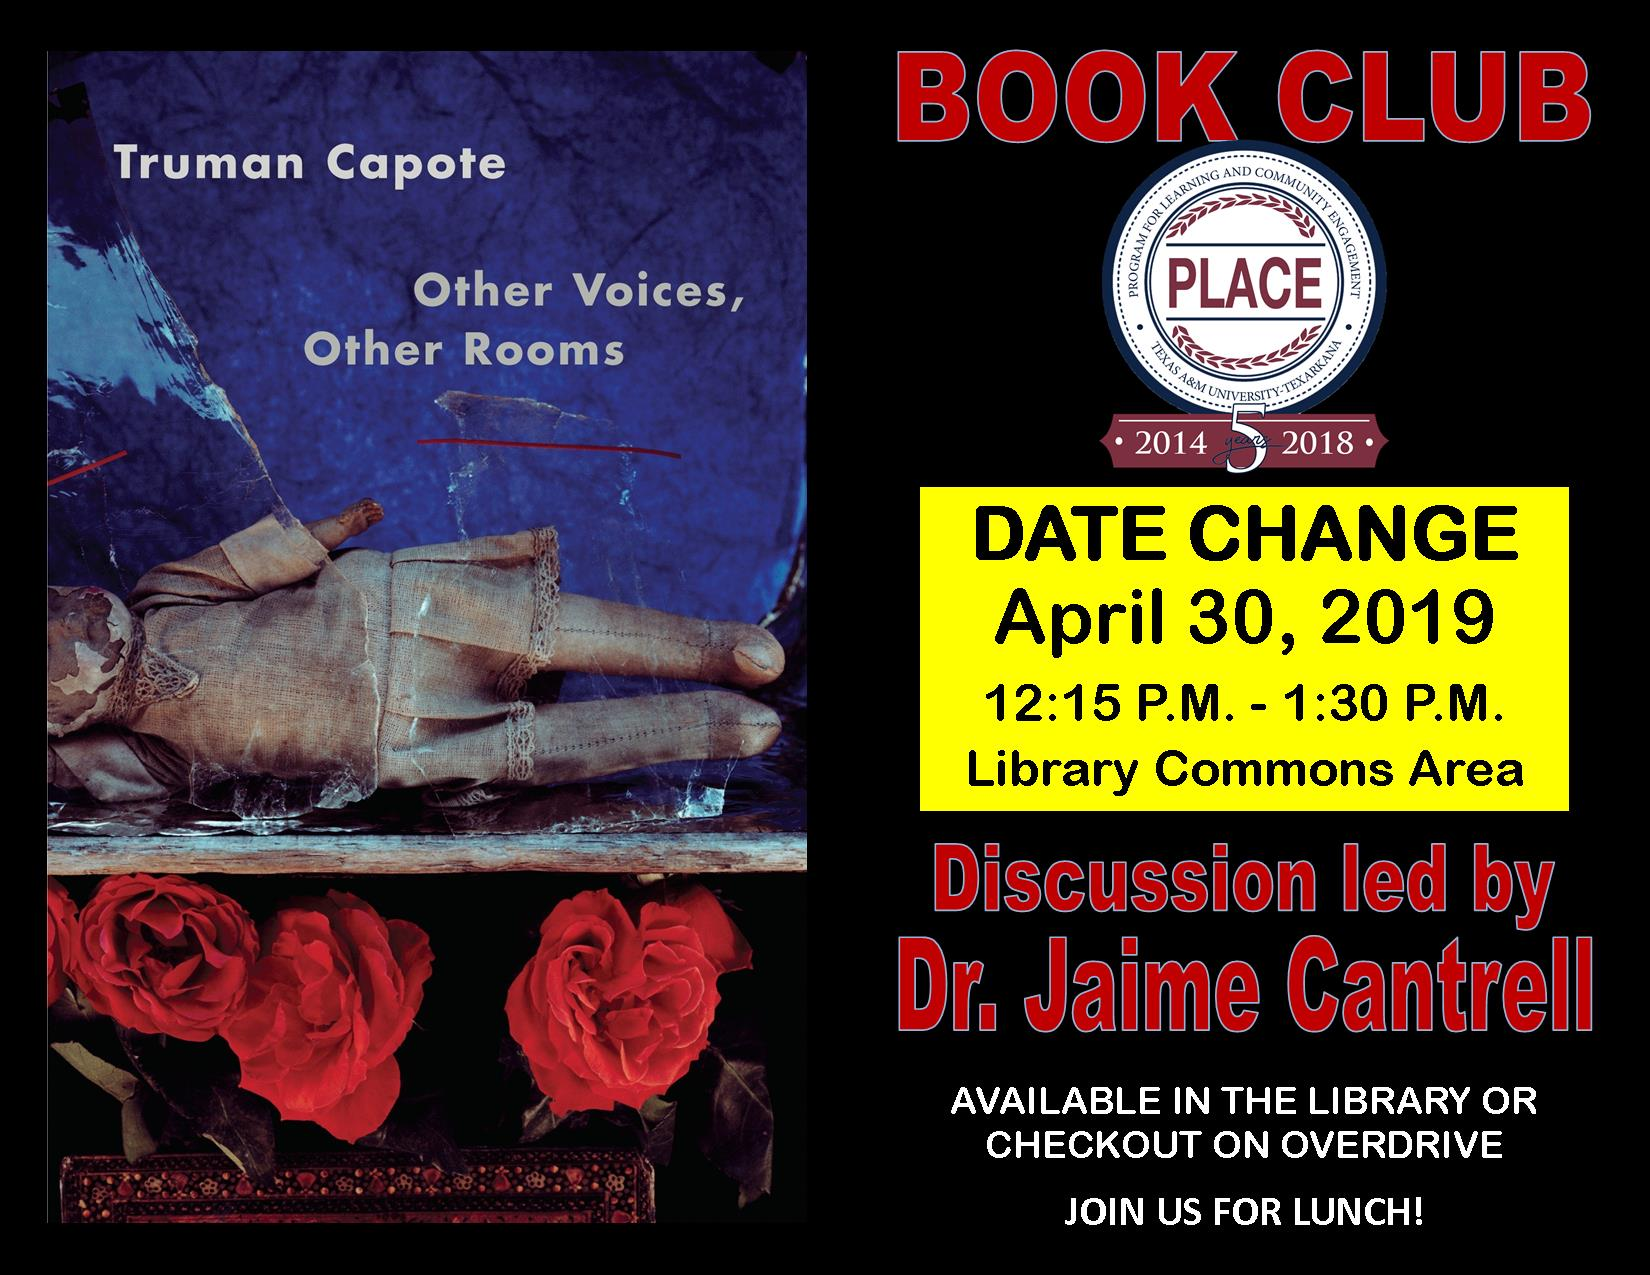 PLACE_Library_Book_Club